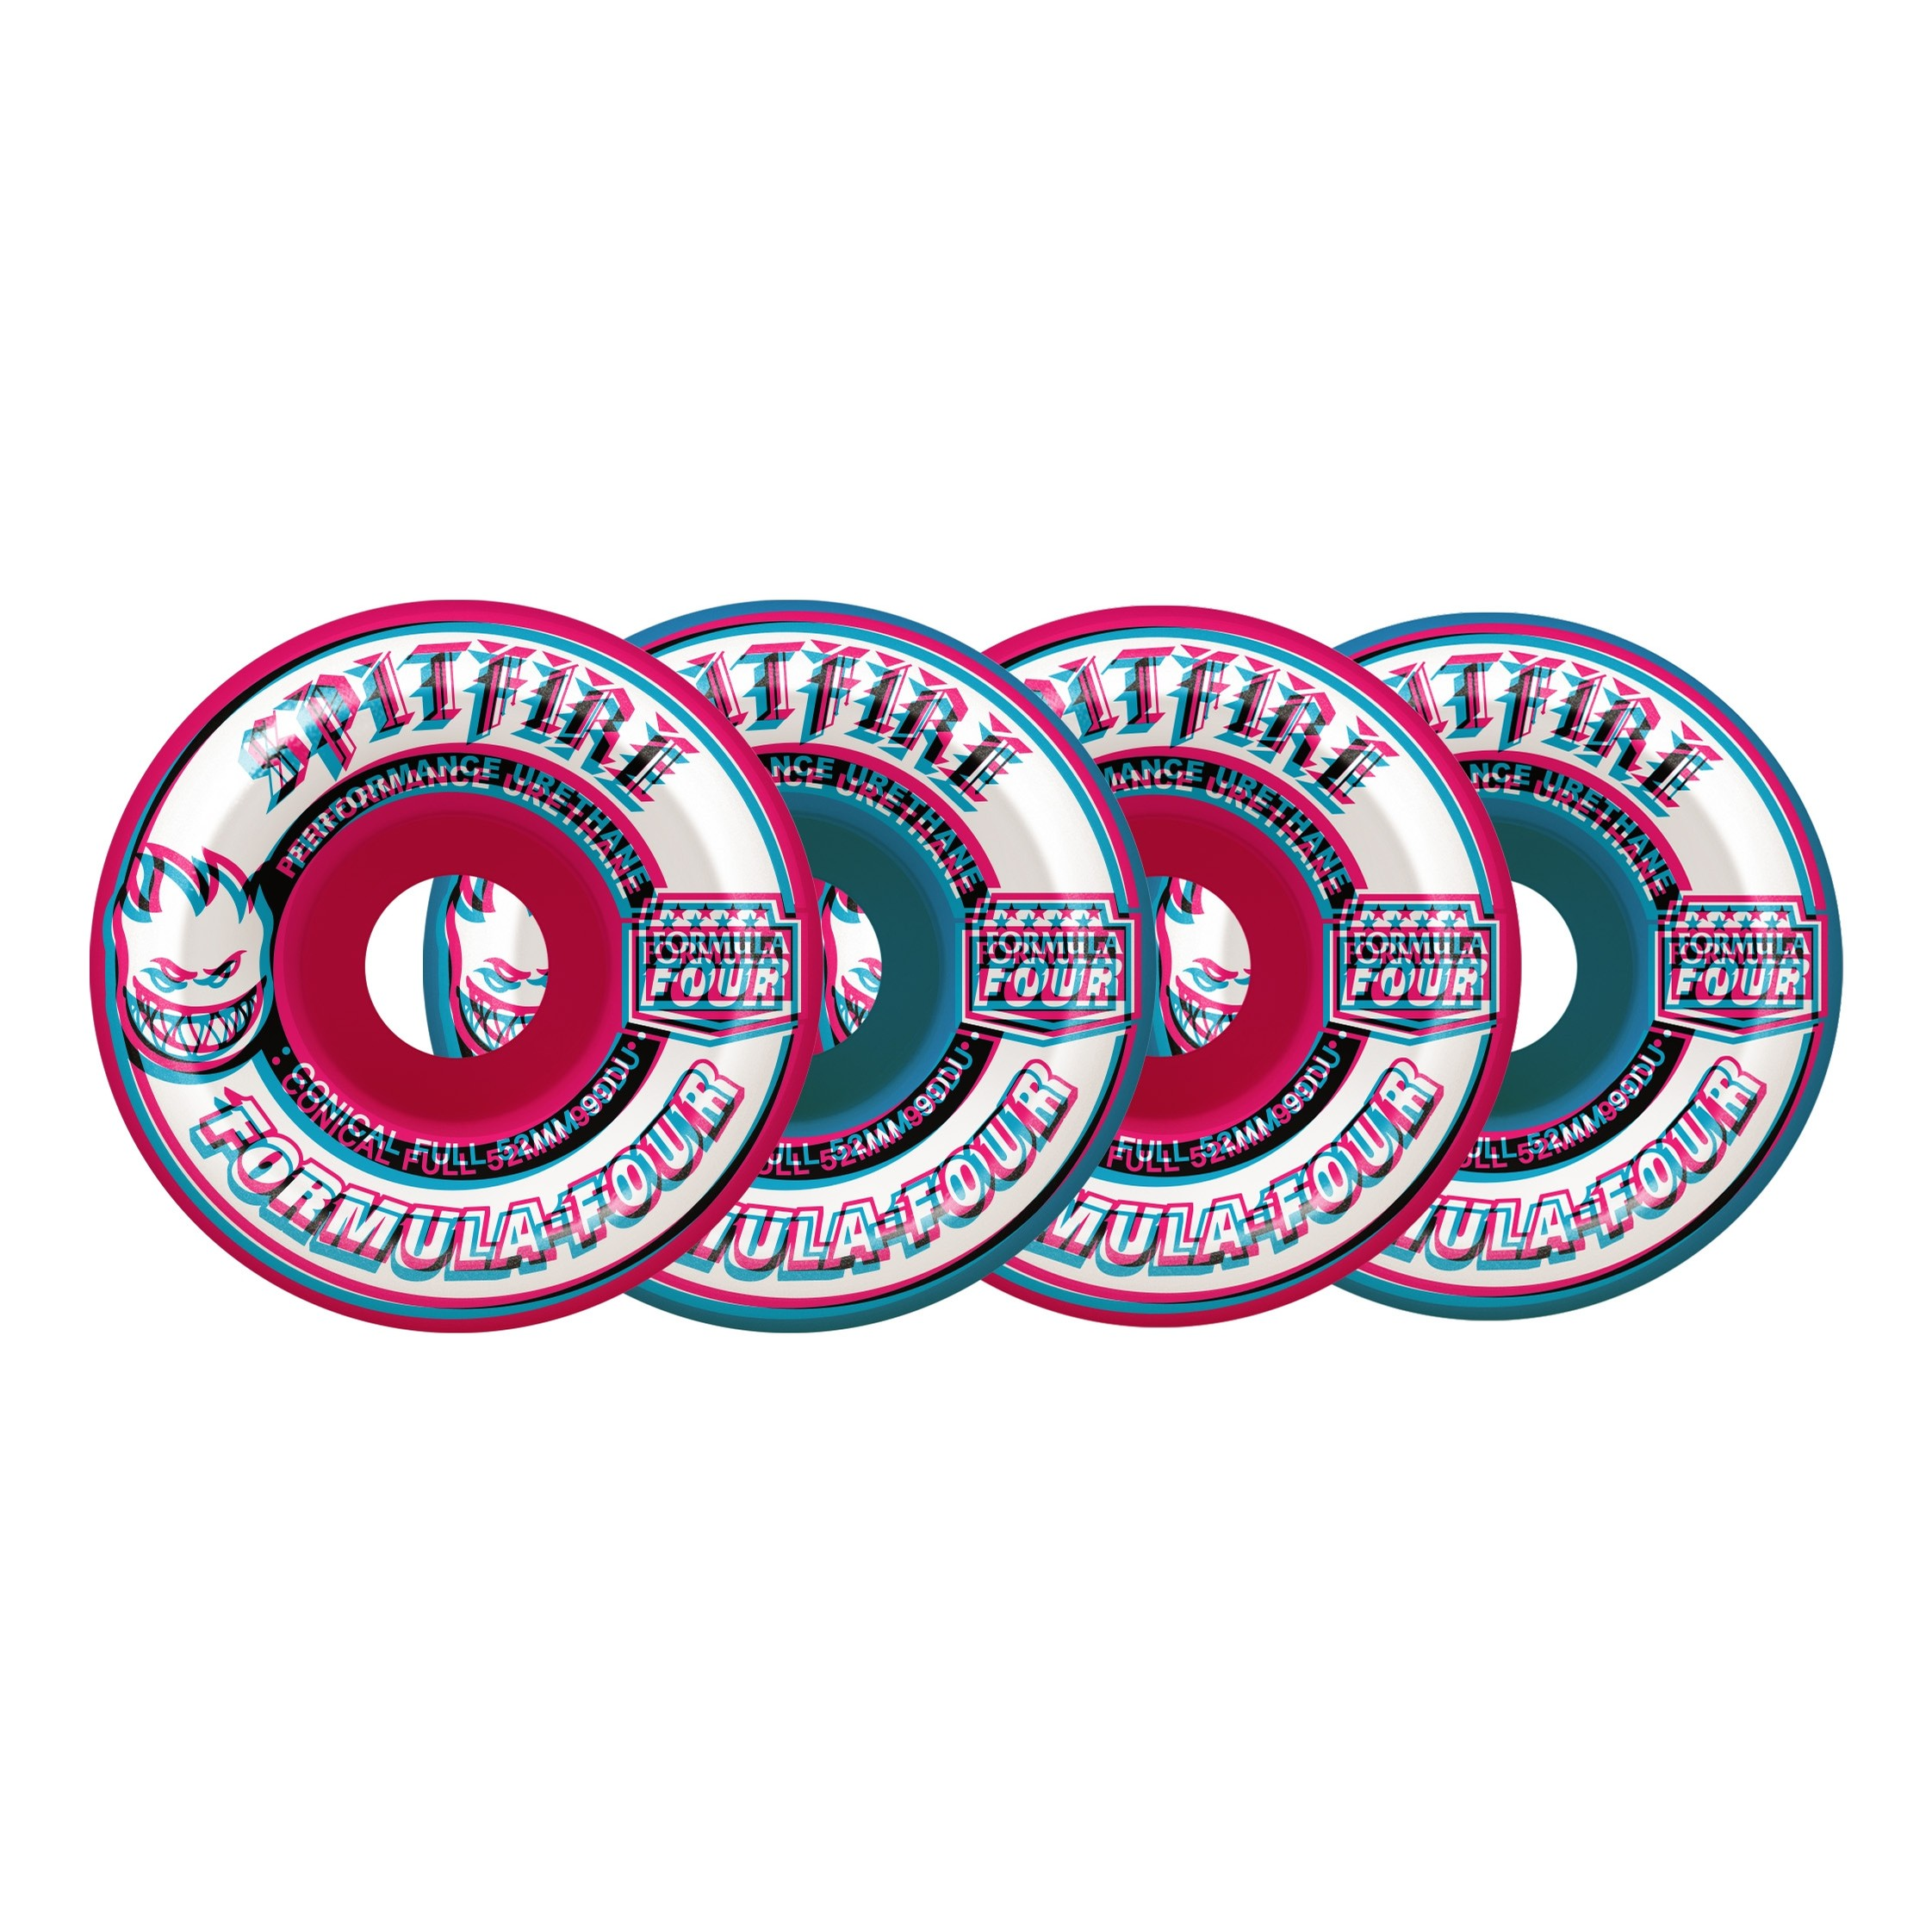 F4 99 Overlay Conical Full Mashup Wheels (Pink/Blue)